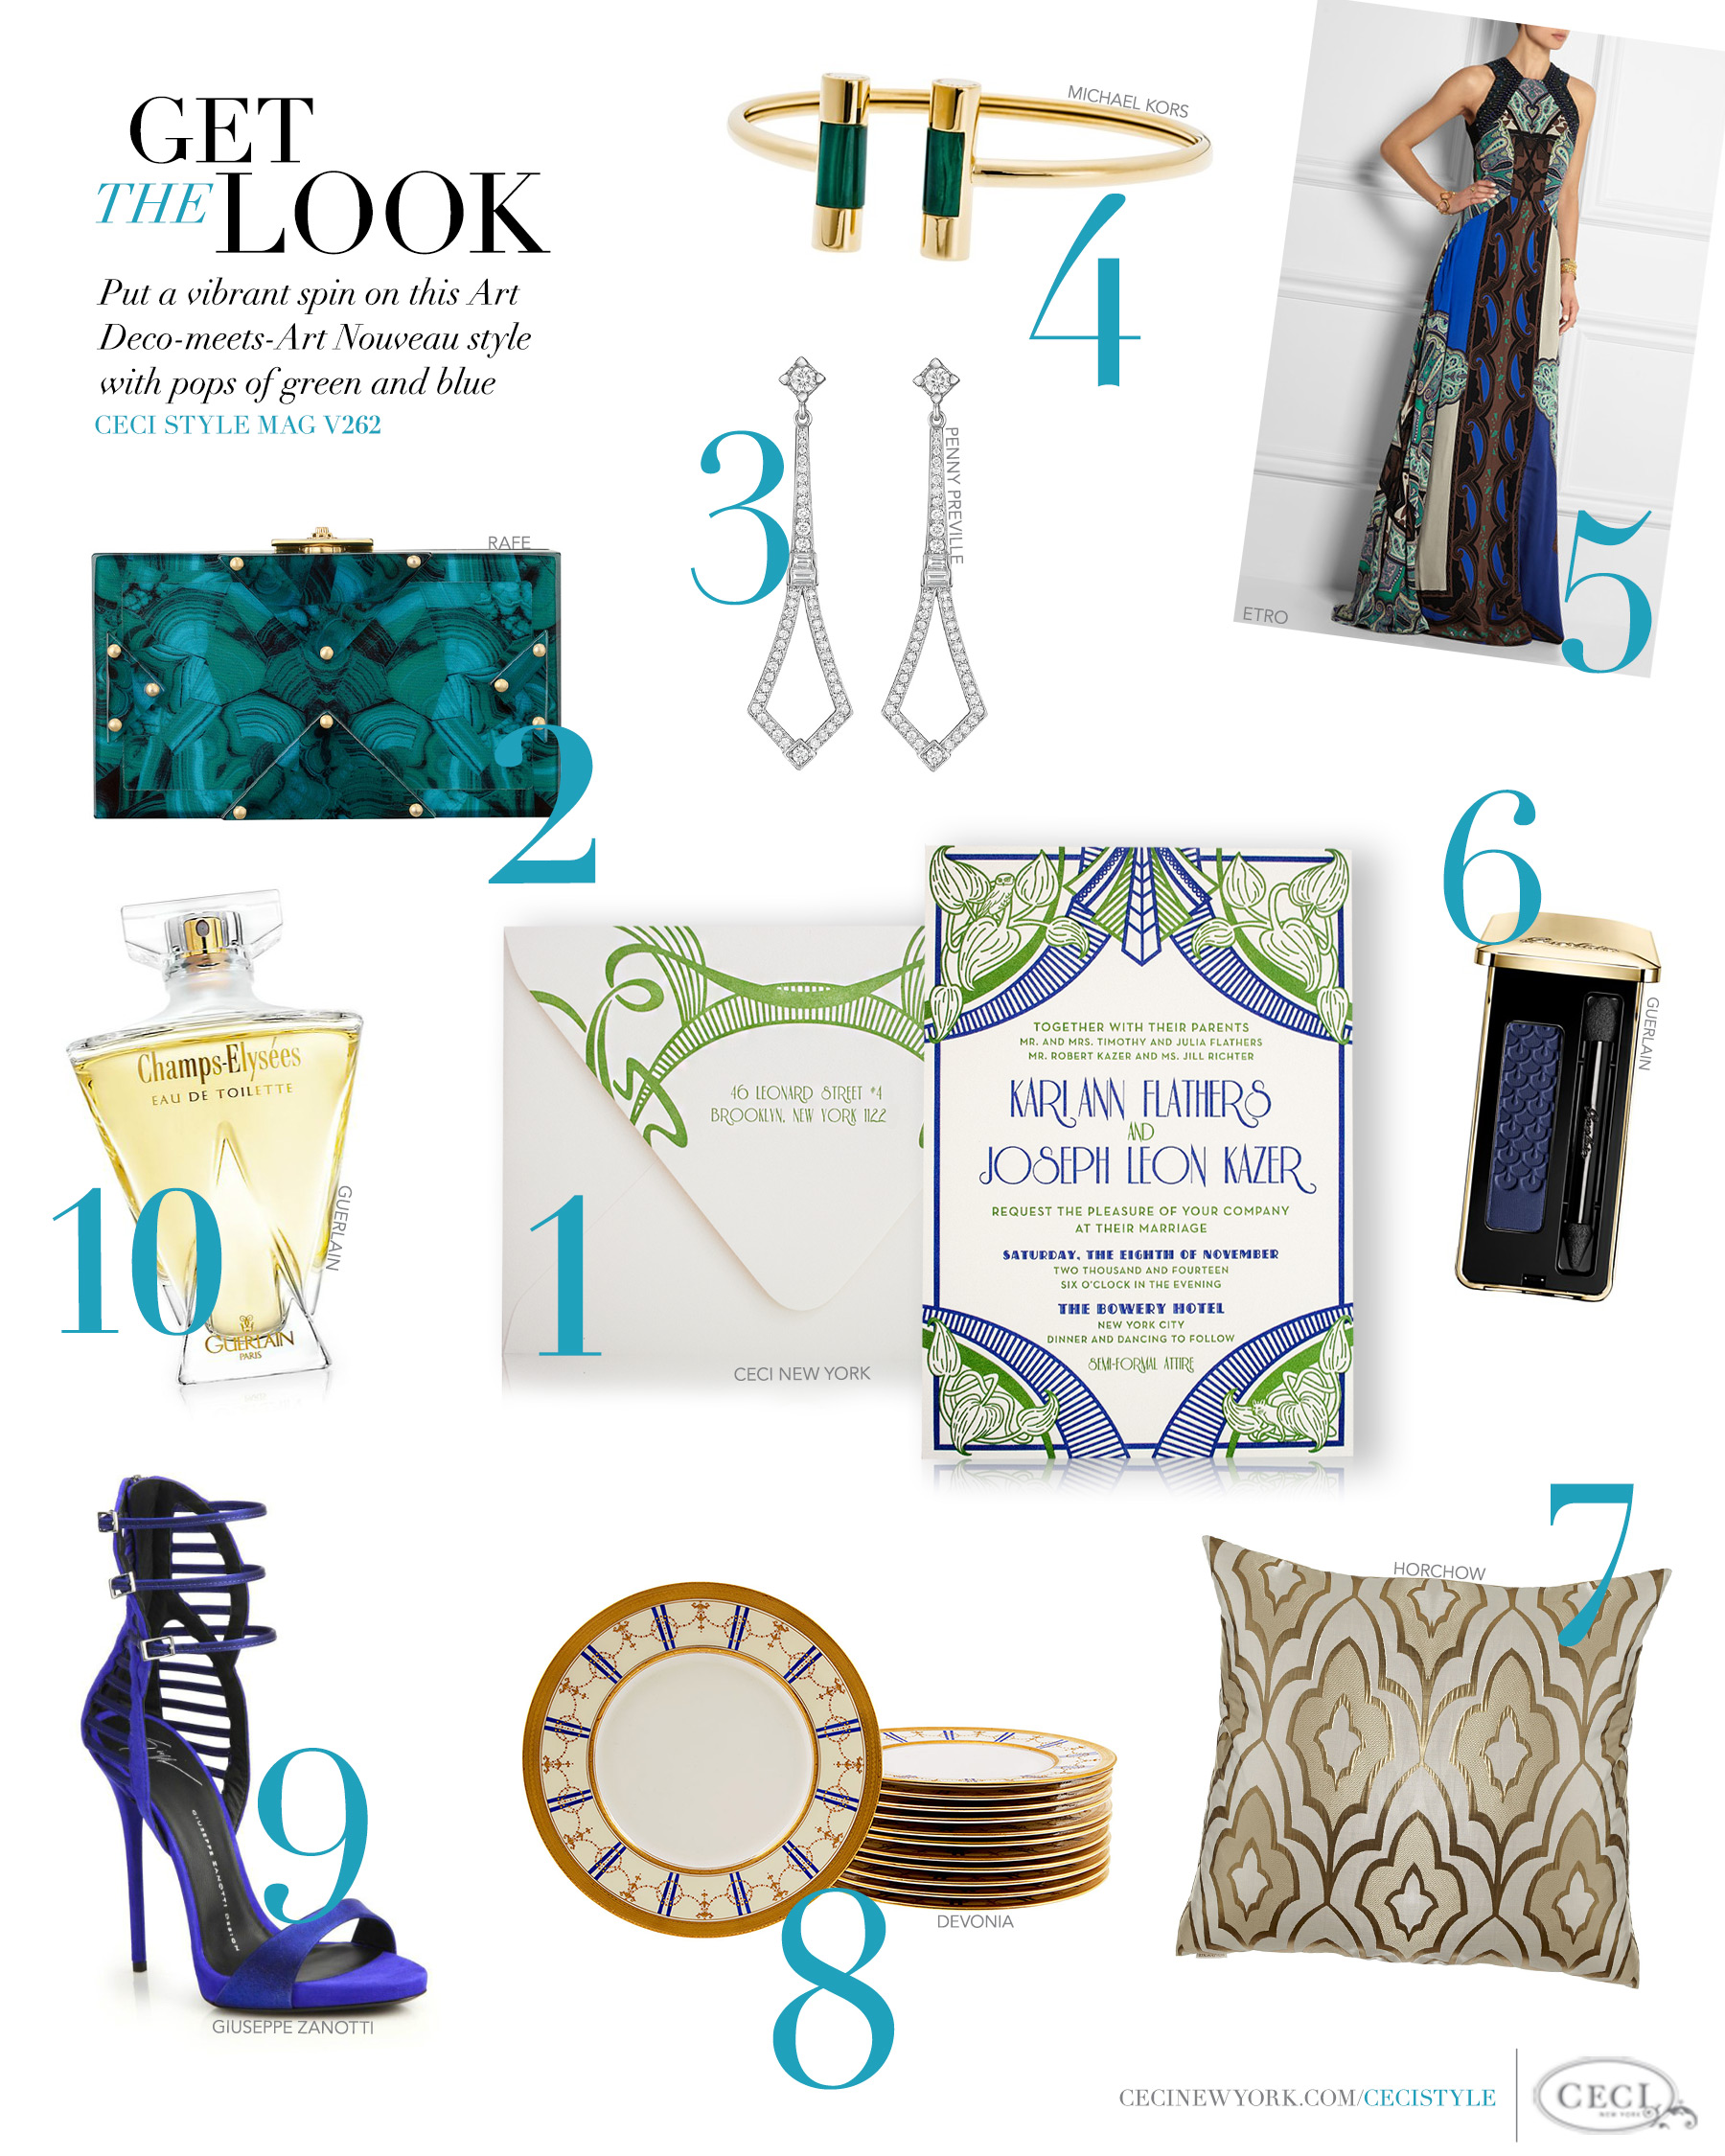 CeciStyle Magazine v262: Get The Look - Put a vibrant spin on Deco style with pops of green and blue. - Deco Desire - Luxury Wedding Invitations by Ceci New York - ceci new york, fashion, style, luxury wedding invitations, couture, custom wedding invitations, clutch, penny preville, earrings, michael kors, bangle, etro, gown, guerlain, makeup, eye shadow, harper, pillow, devonia, plate, giuseppe zanotti, sandals, guerlain, perfume, champs-elysees